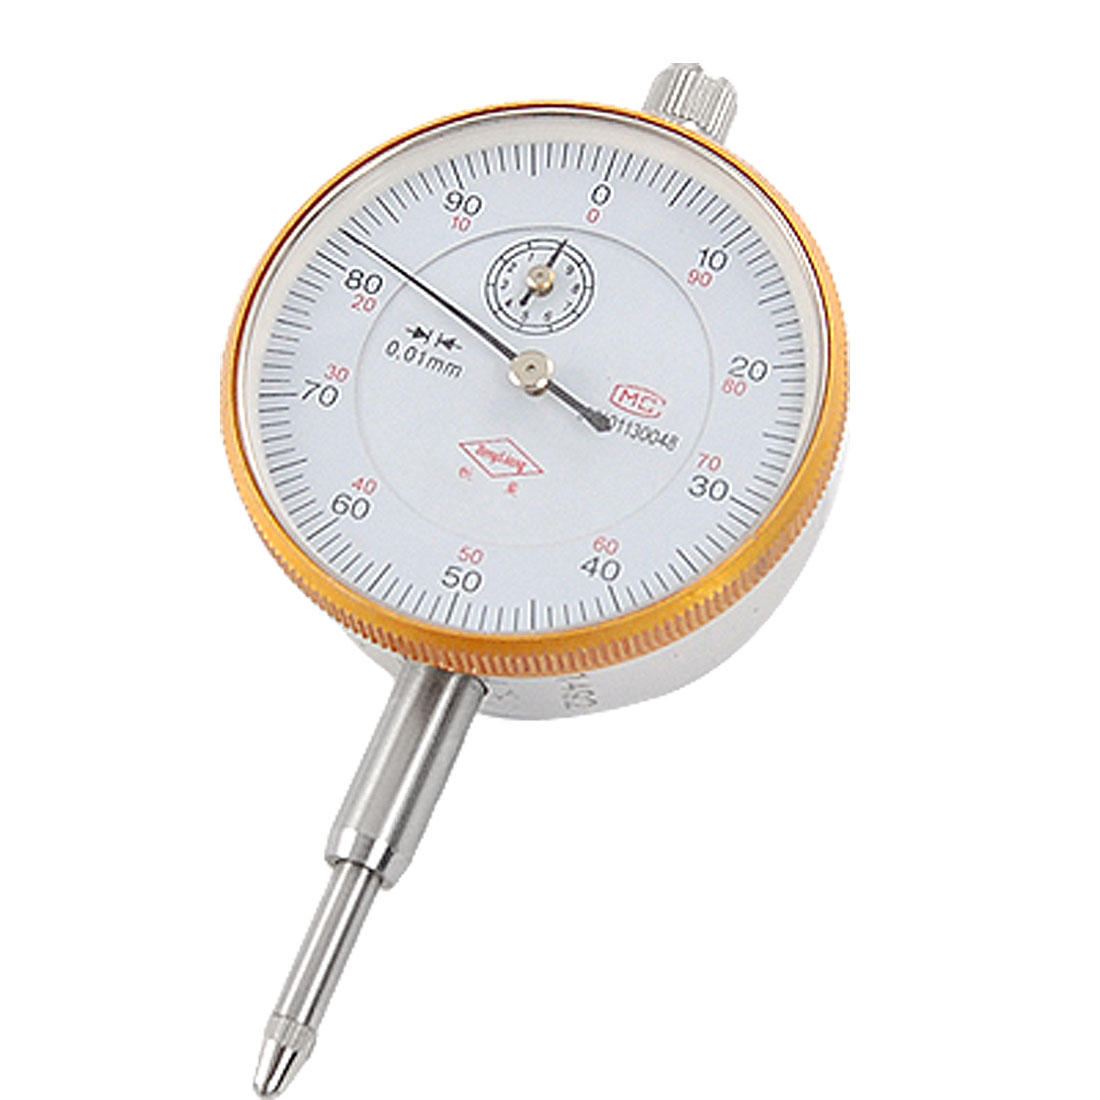 Vertical Contact Round Dial Indicator Silver Tone Orange 0.01mm